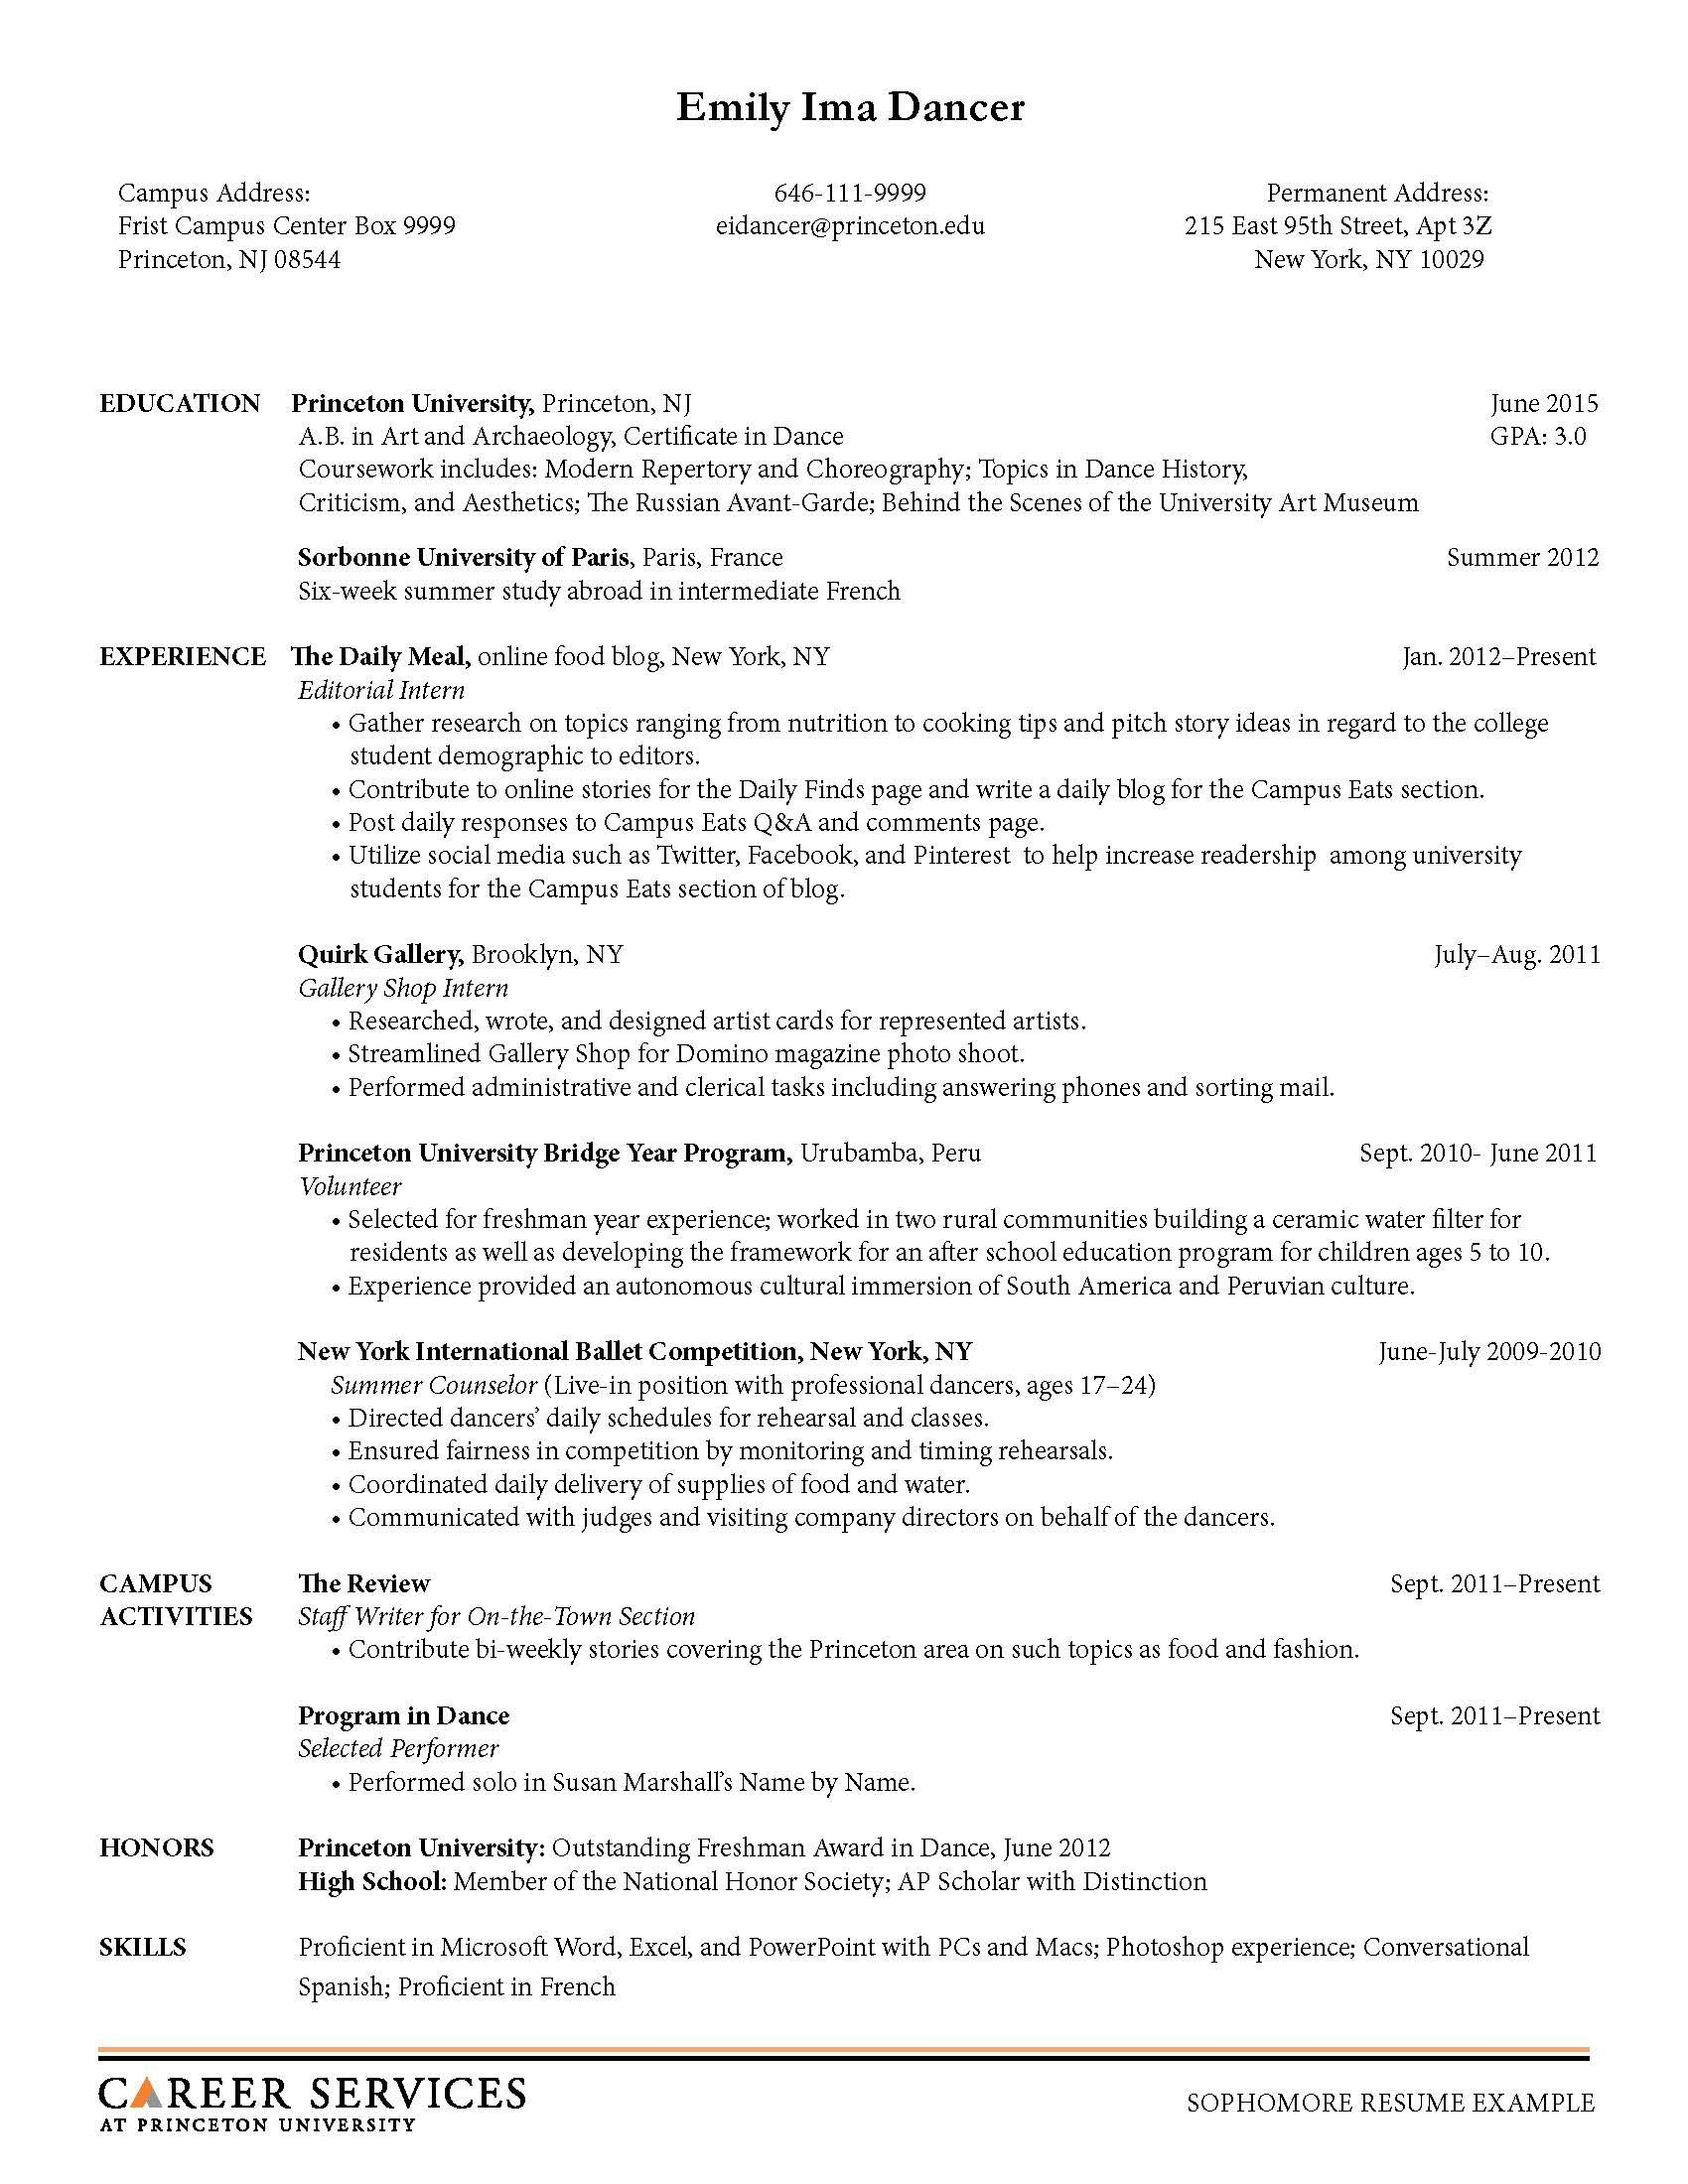 Picnictoimpeachus  Fascinating Sample Resume Resume And Career On Pinterest With Exquisite Dental Resume Examples Besides Free Resume Templates Download For Microsoft Word Furthermore Resume Tips Objective With Extraordinary Job Resume Objectives Also Nursing Resumes Samples In Addition Video Resume Script And Sample Investment Banking Resume As Well As Builder Resume Additionally Cinematographer Resume From Pinterestcom With Picnictoimpeachus  Exquisite Sample Resume Resume And Career On Pinterest With Extraordinary Dental Resume Examples Besides Free Resume Templates Download For Microsoft Word Furthermore Resume Tips Objective And Fascinating Job Resume Objectives Also Nursing Resumes Samples In Addition Video Resume Script From Pinterestcom